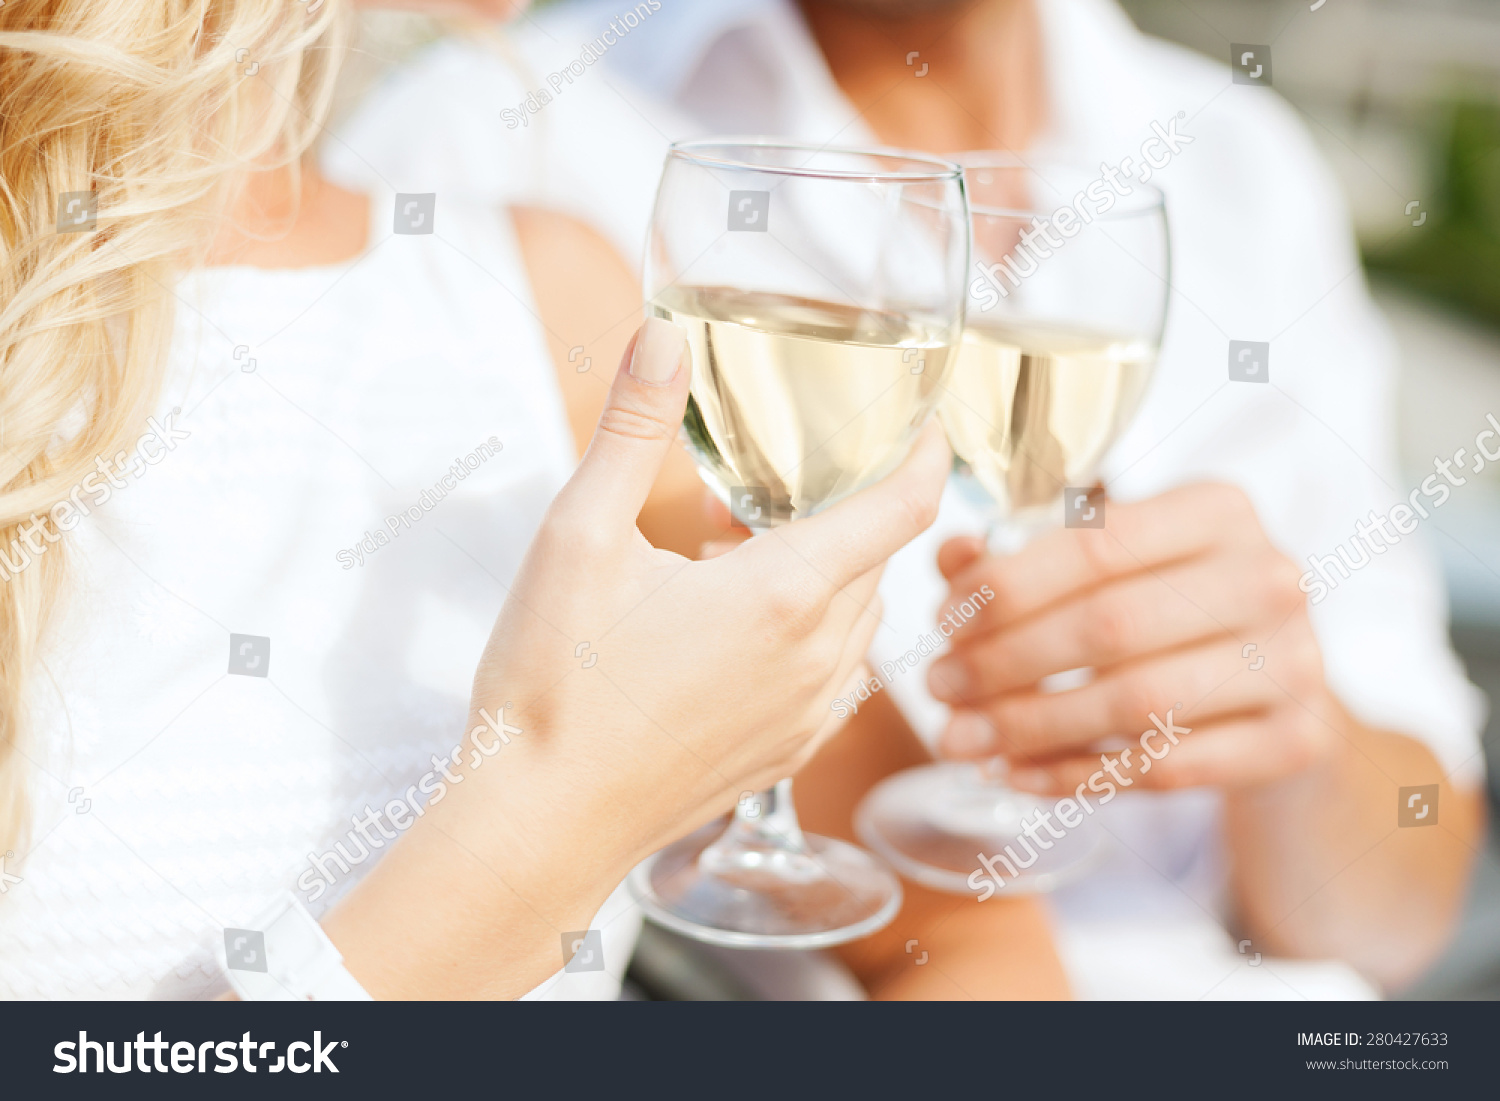 wine love dating site Discover winery friends date, the completely free site for single wine and vineyard lovers never pay anything for dating and friendship at the wine dating site.